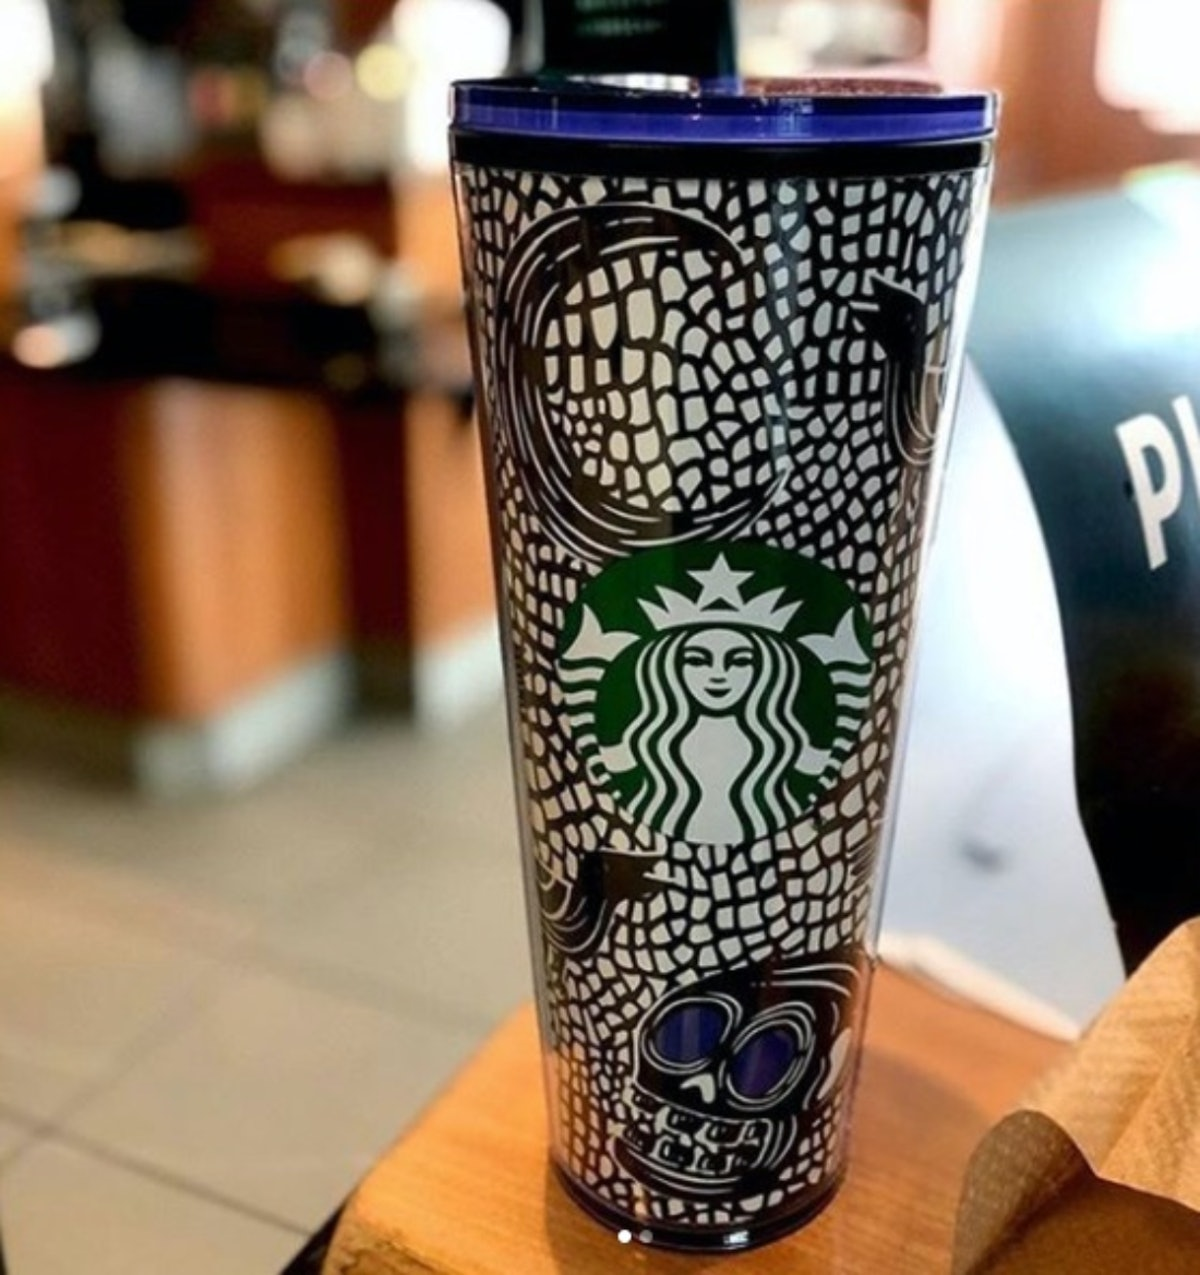 Starbucks' Halloween 2020 tumblers and cold cups are here for the season.